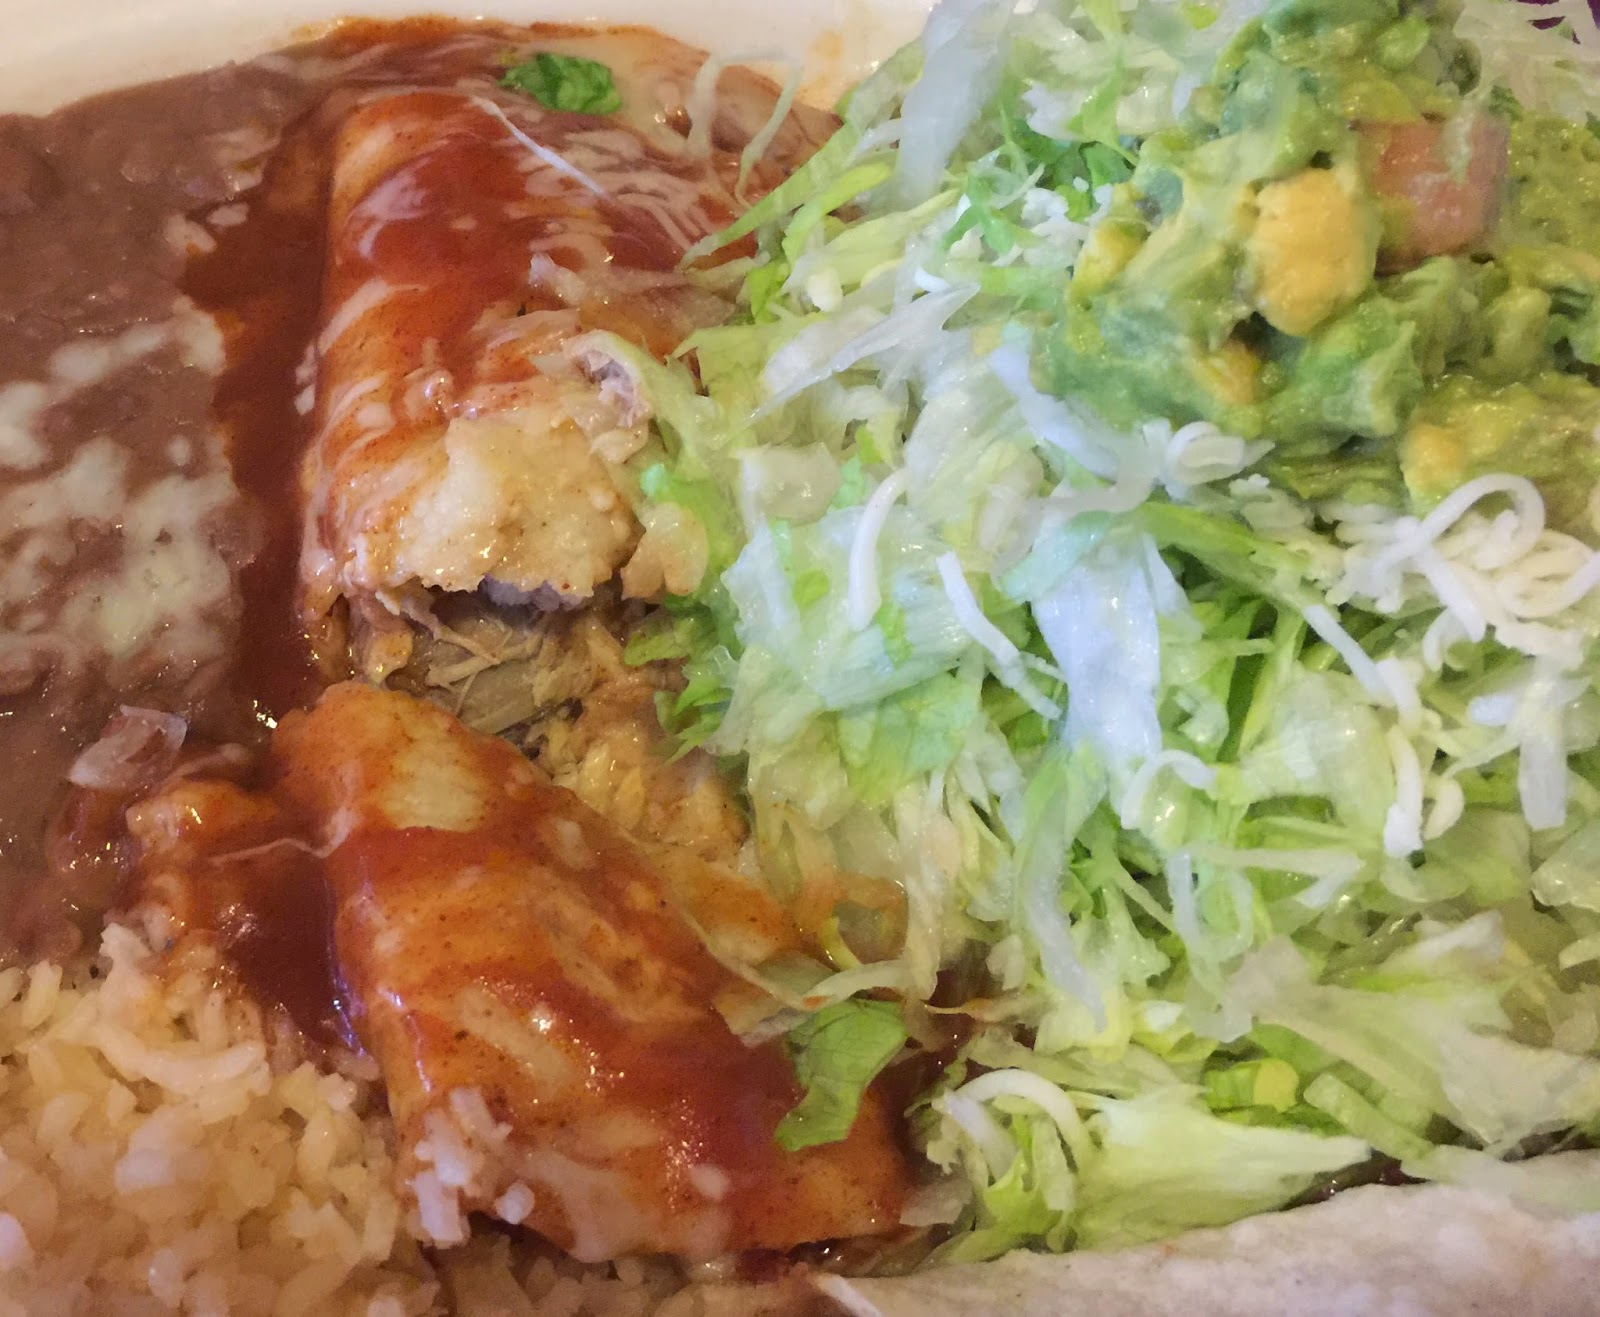 TASTE OF HAWAII: AZTECA MEXICAN RESTAURANT